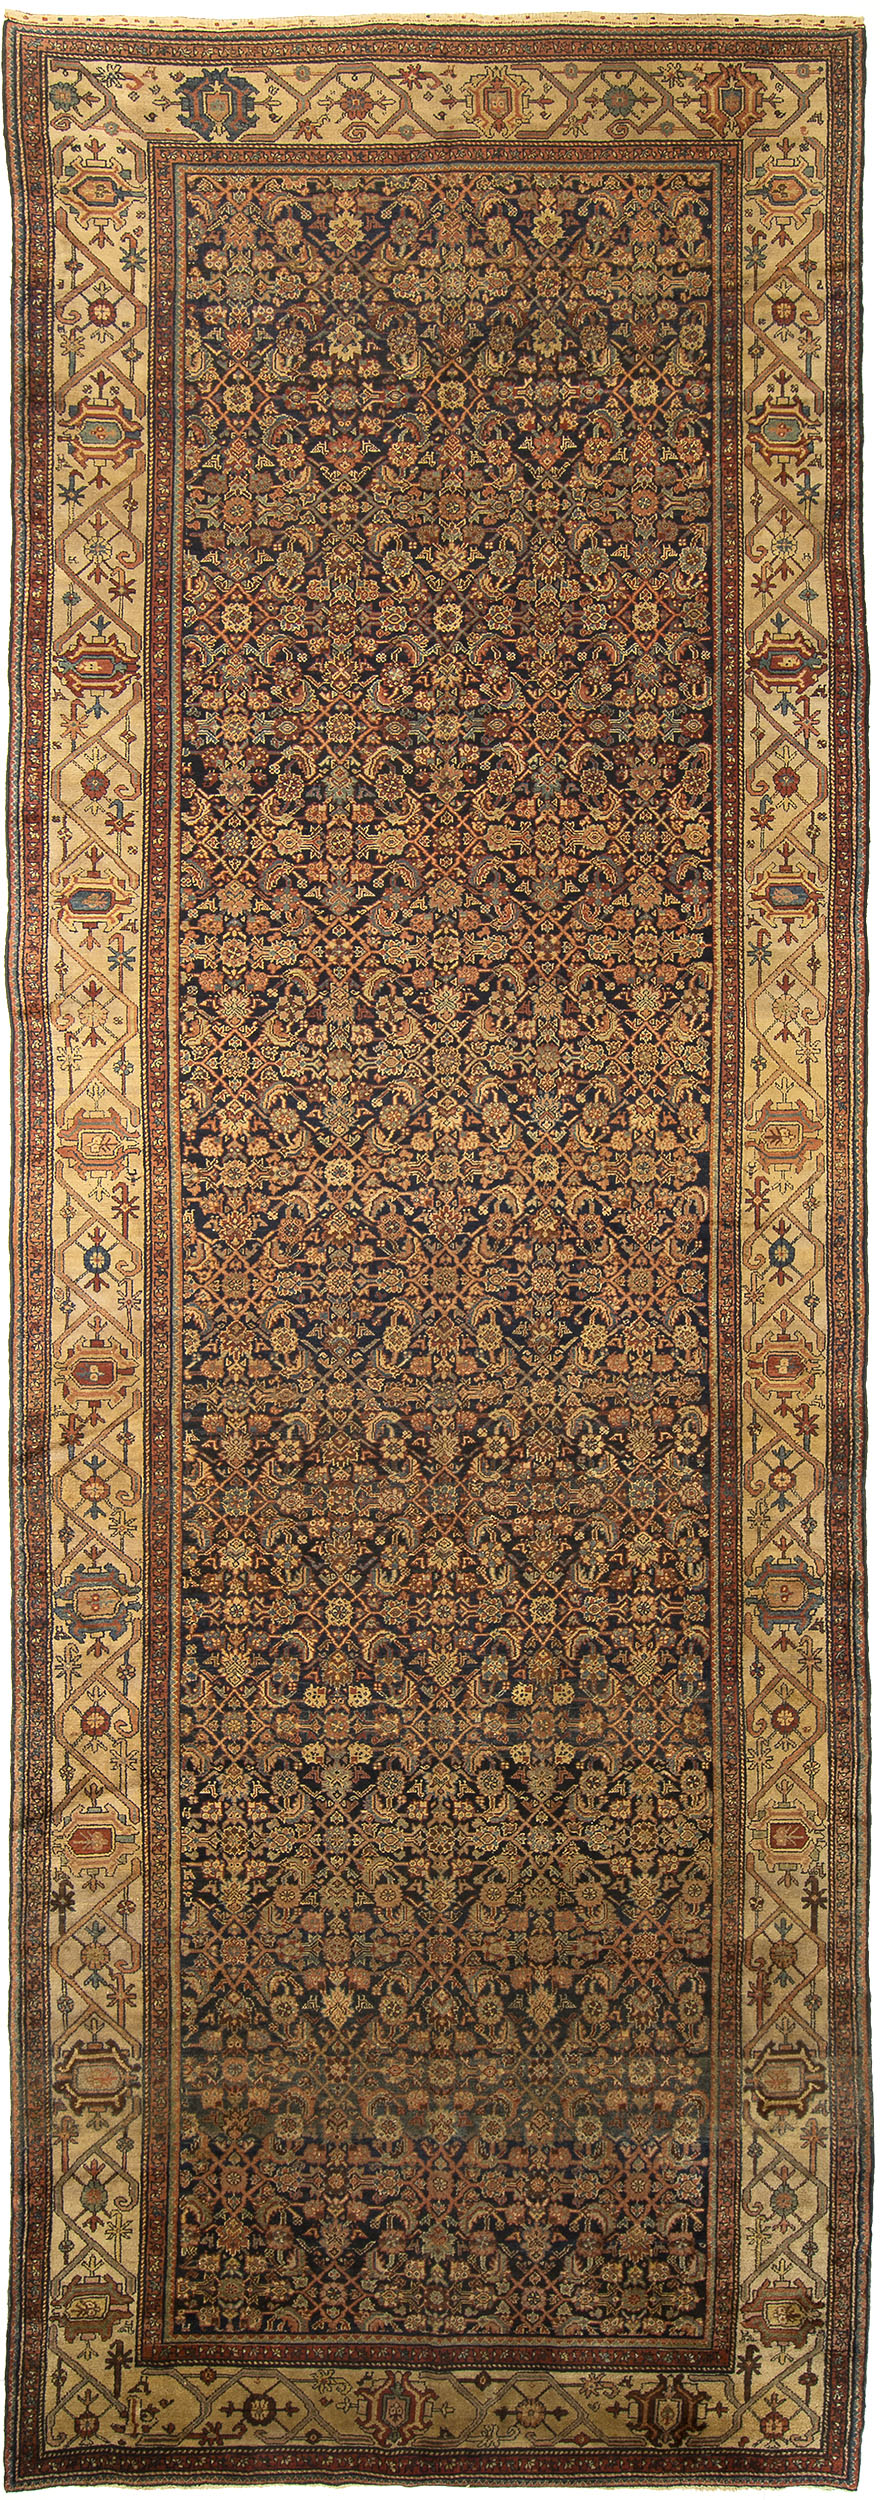 "NW Persian Gallery Carpet 19' 10"" x 6' 9"""